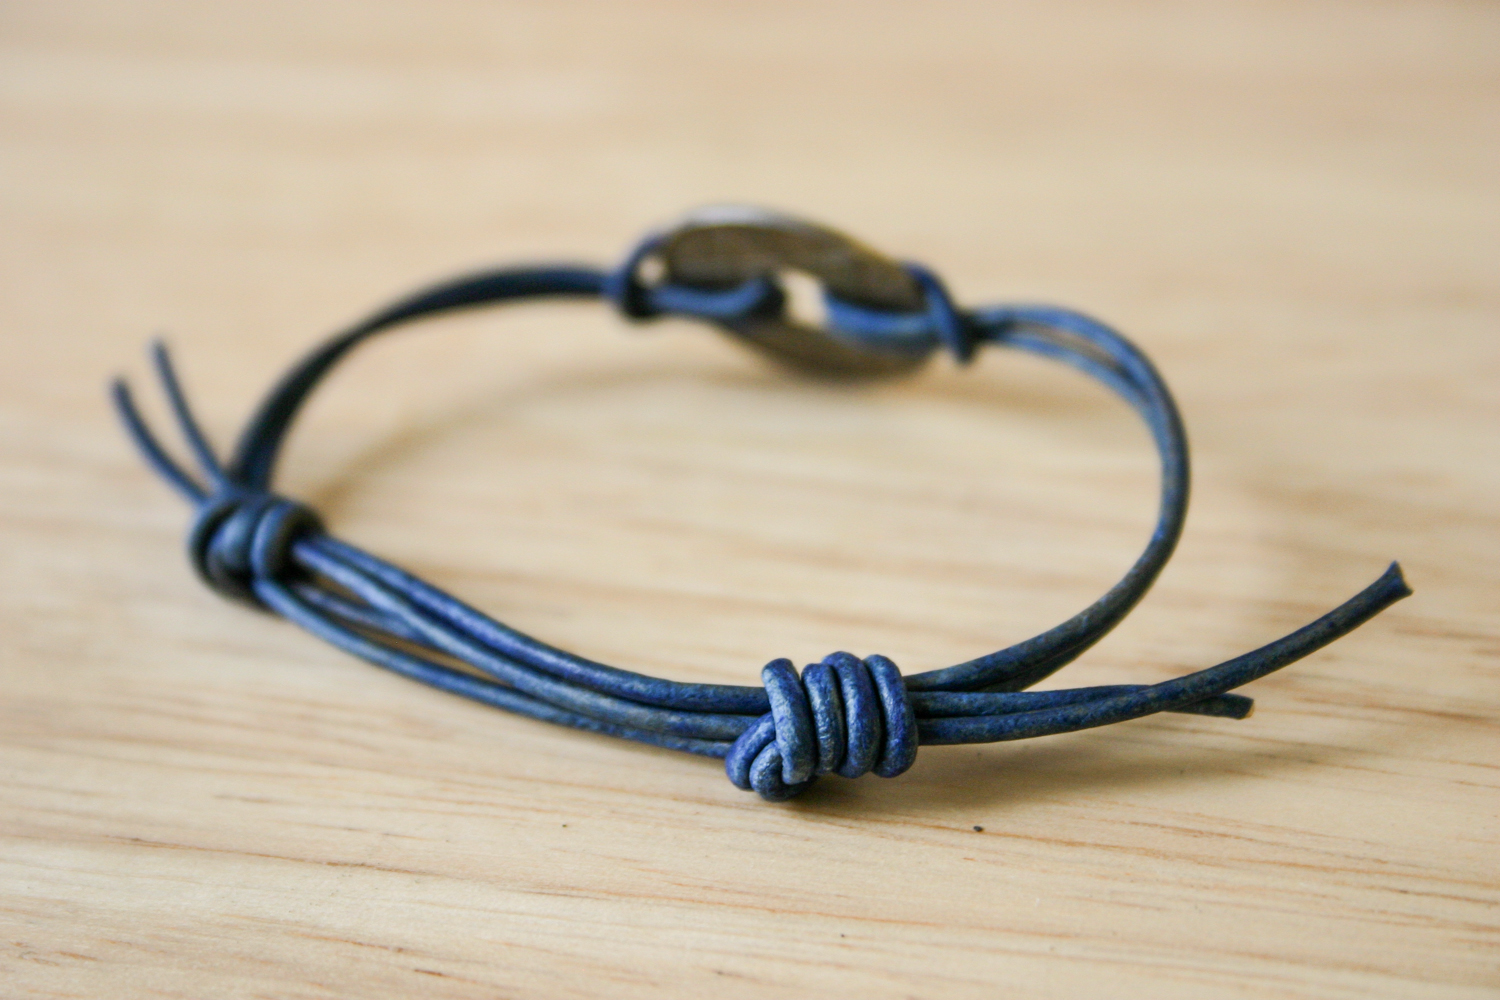 Simple Sliding Knot Bracelet 8 Steps With Pictures Instructables